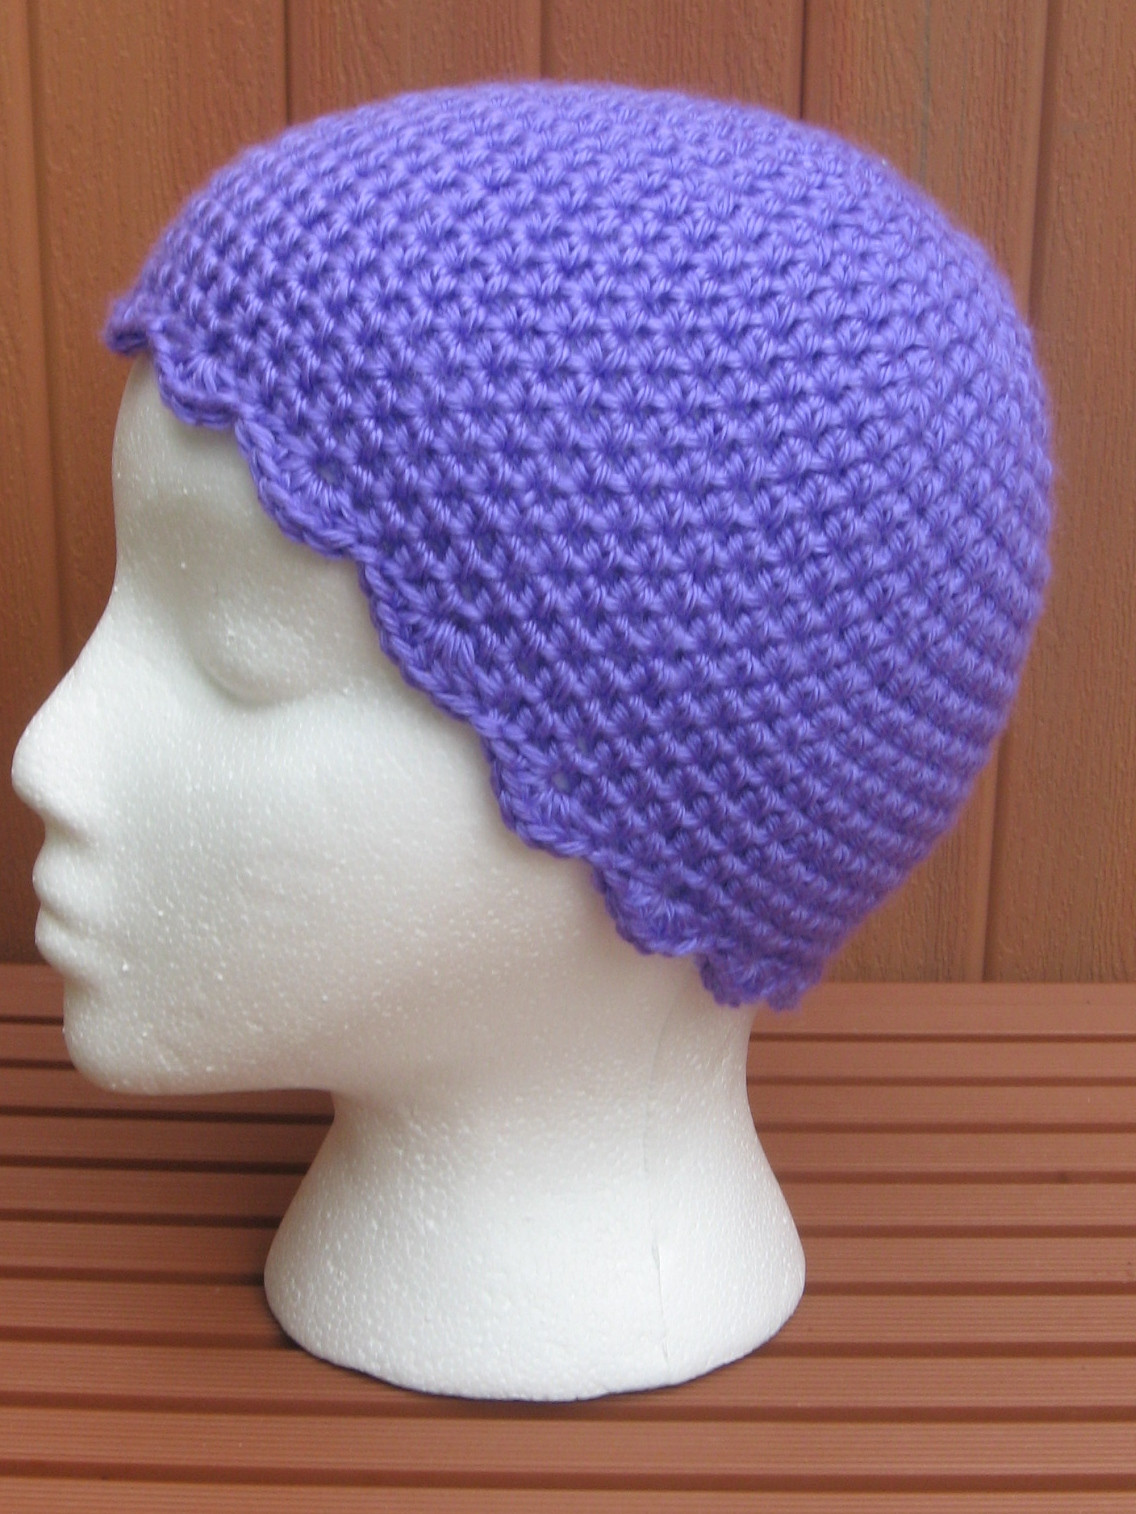 Free Chemo Hat Patterns Best Of Crochet Projects Crochet Chemo Sleep Cap Of Contemporary 43 Images Free Chemo Hat Patterns